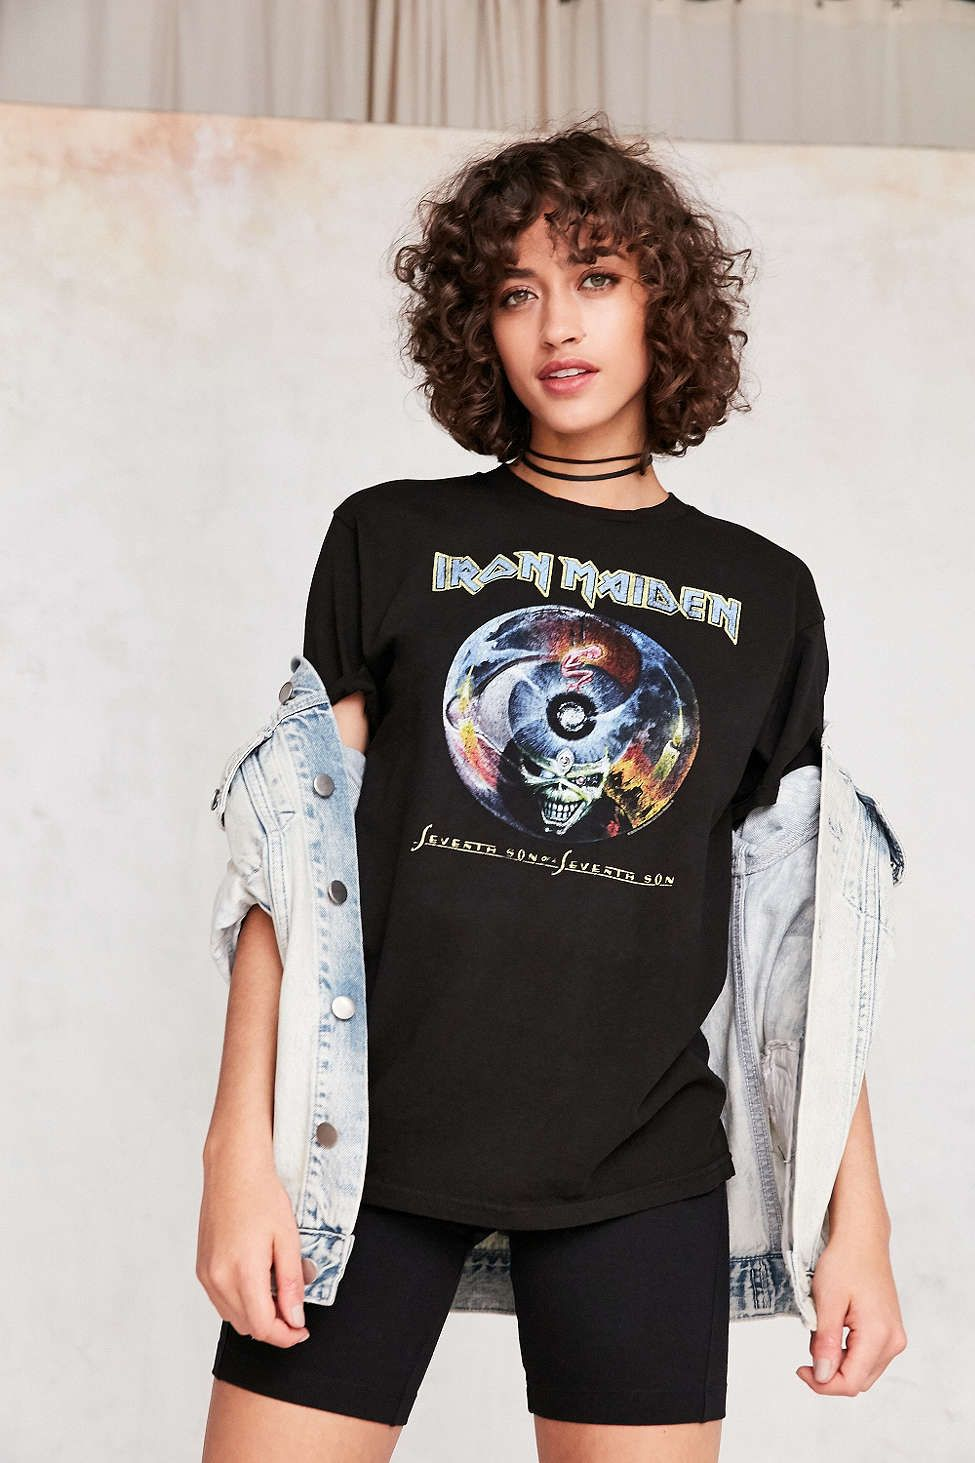 94a0ff36 Iron Maiden Tee - Urban Outfitters | Tees | Womens vintage tees, T ...